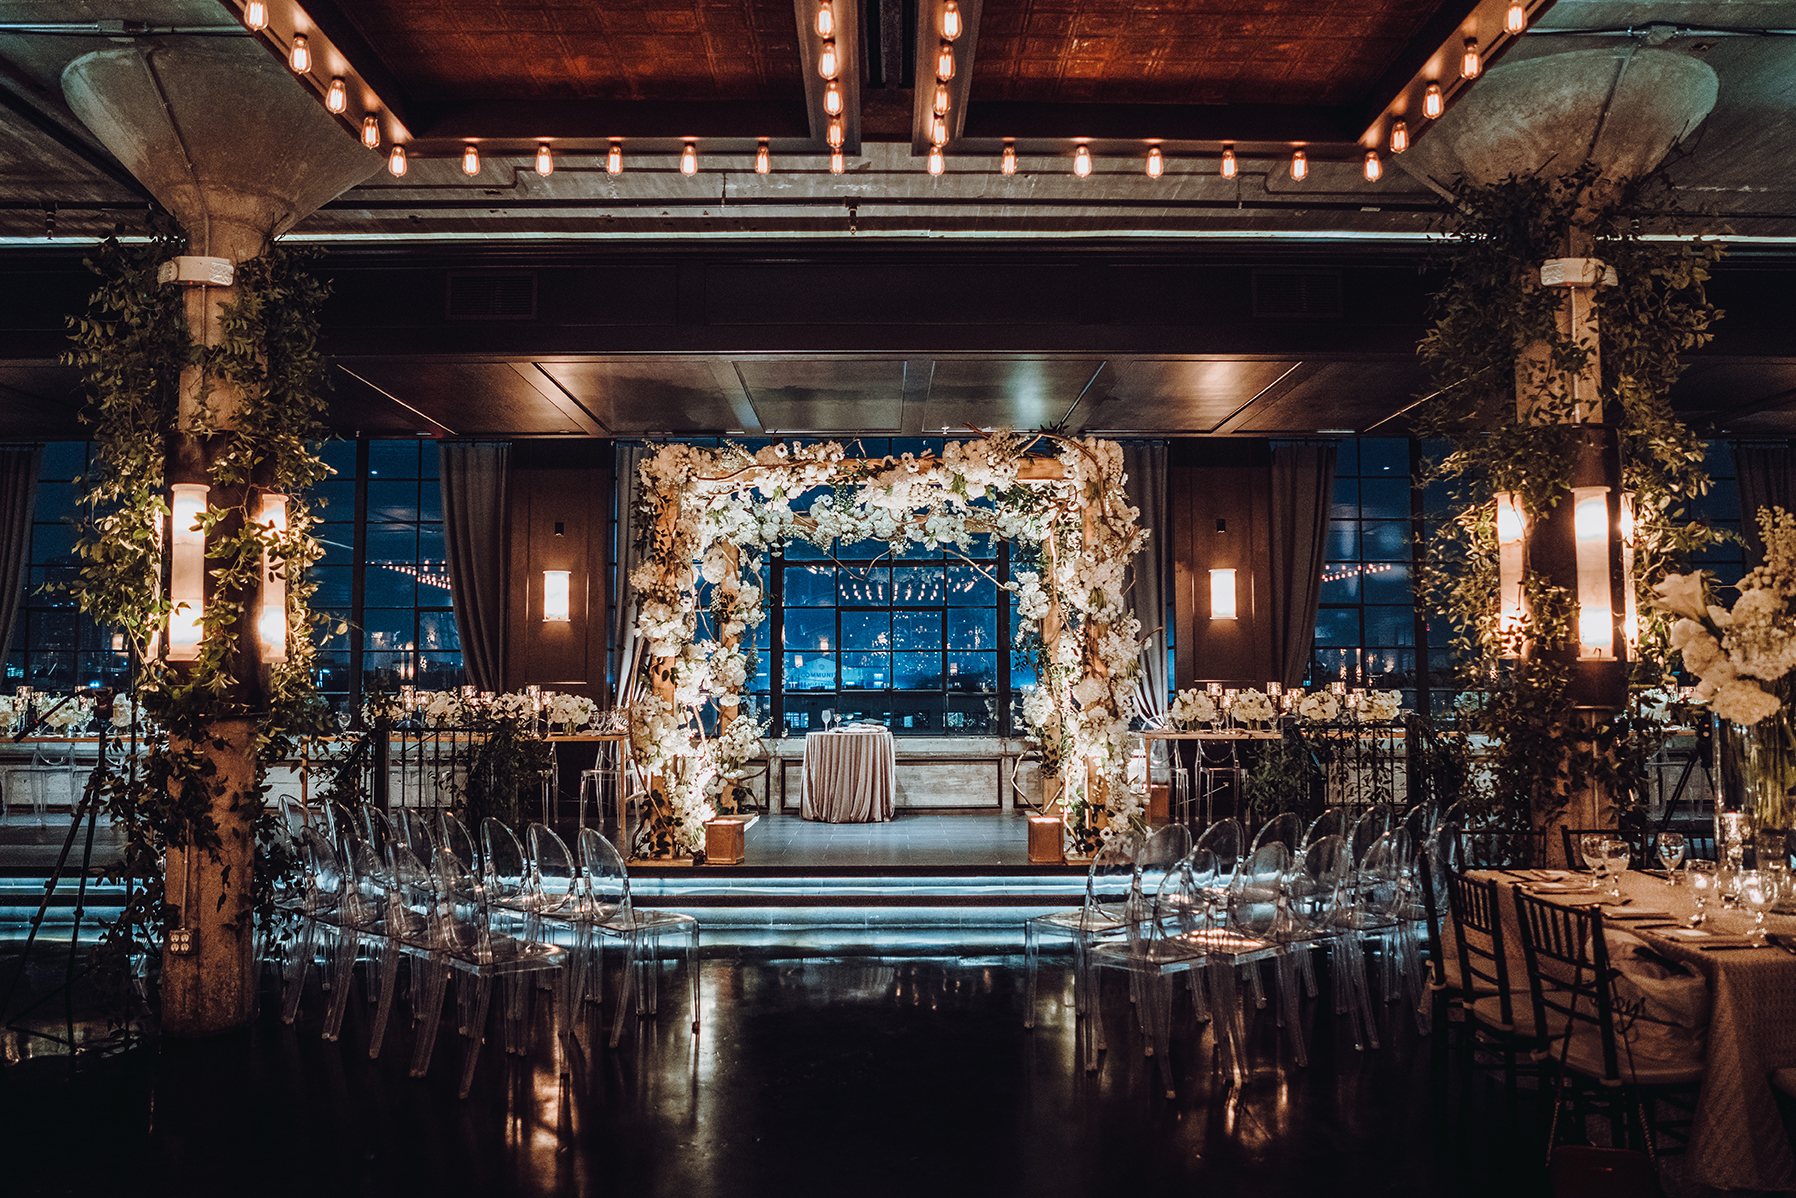 Houston Wedding, Ceremony Decor, Floral Canopy, The Astorian, Night Wedding